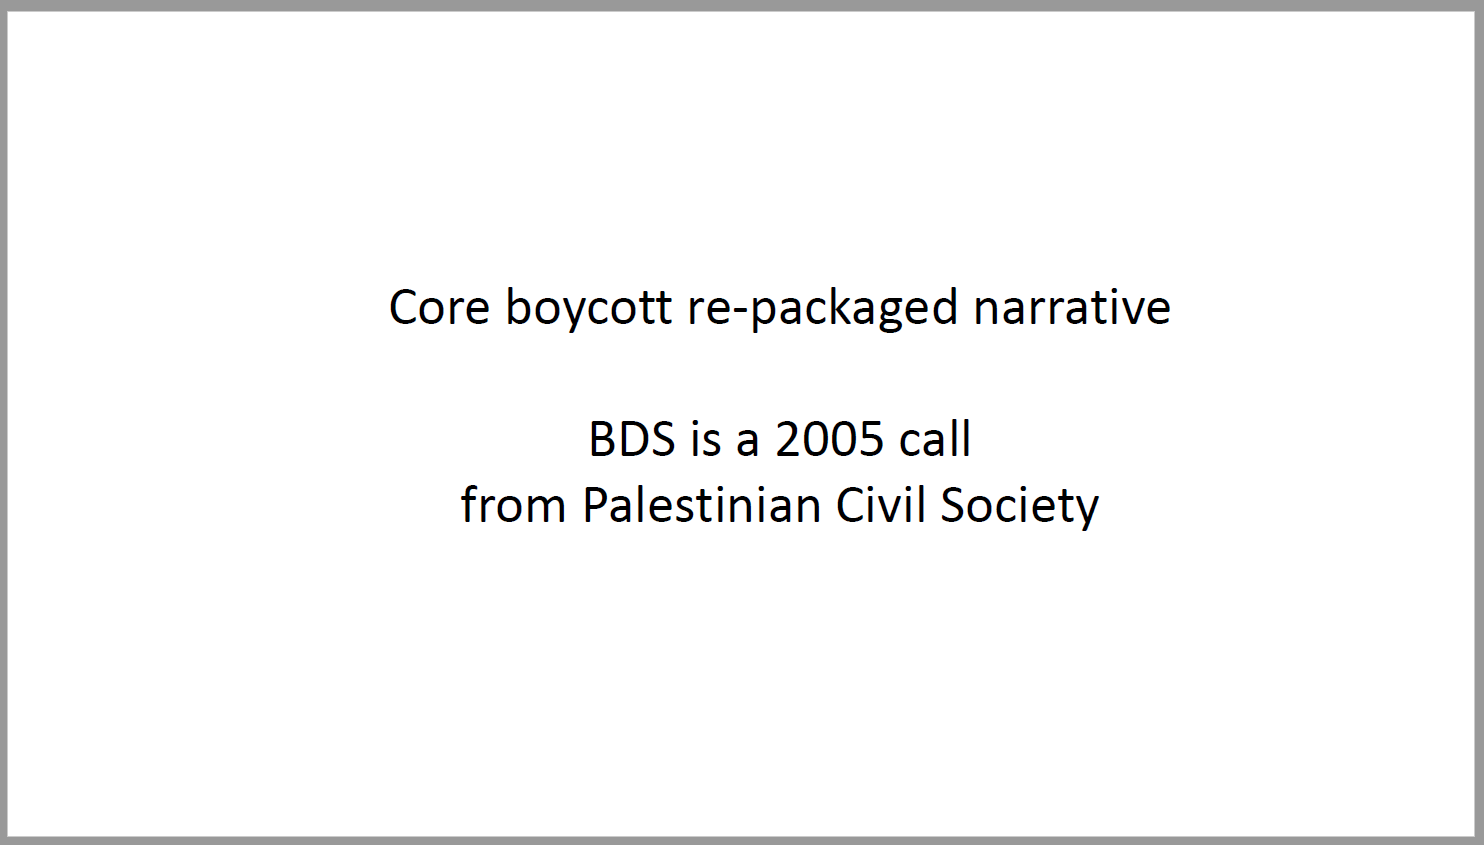 bds-history-slide-core-narrative-2005-call-palestinian-civil-society